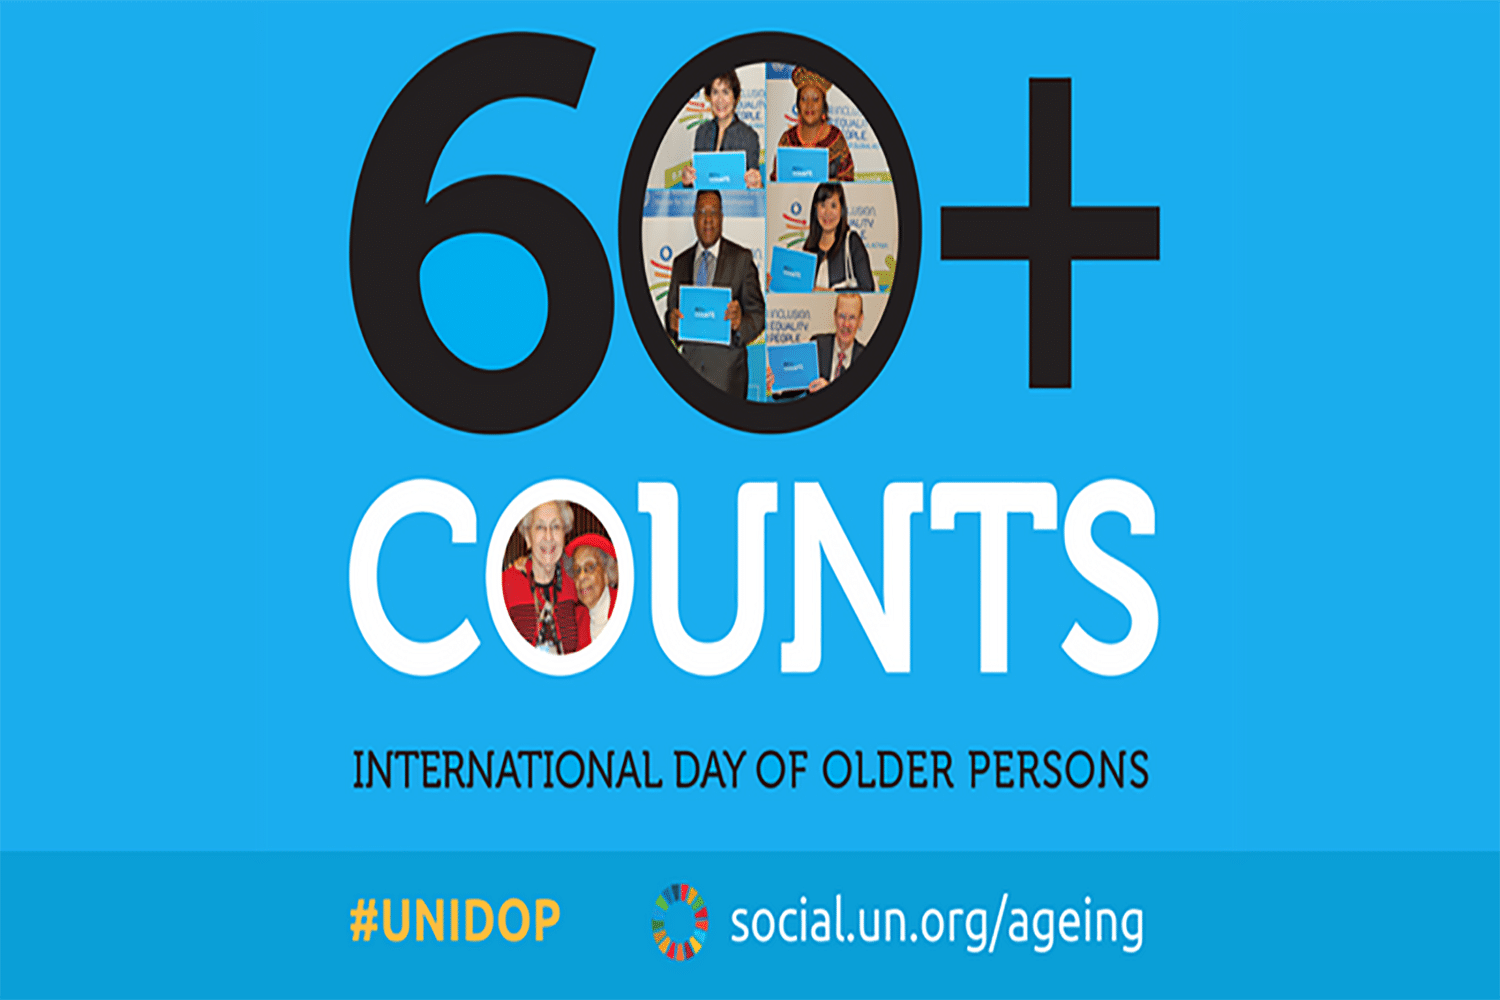 60+ counts: International Day of Older Persons